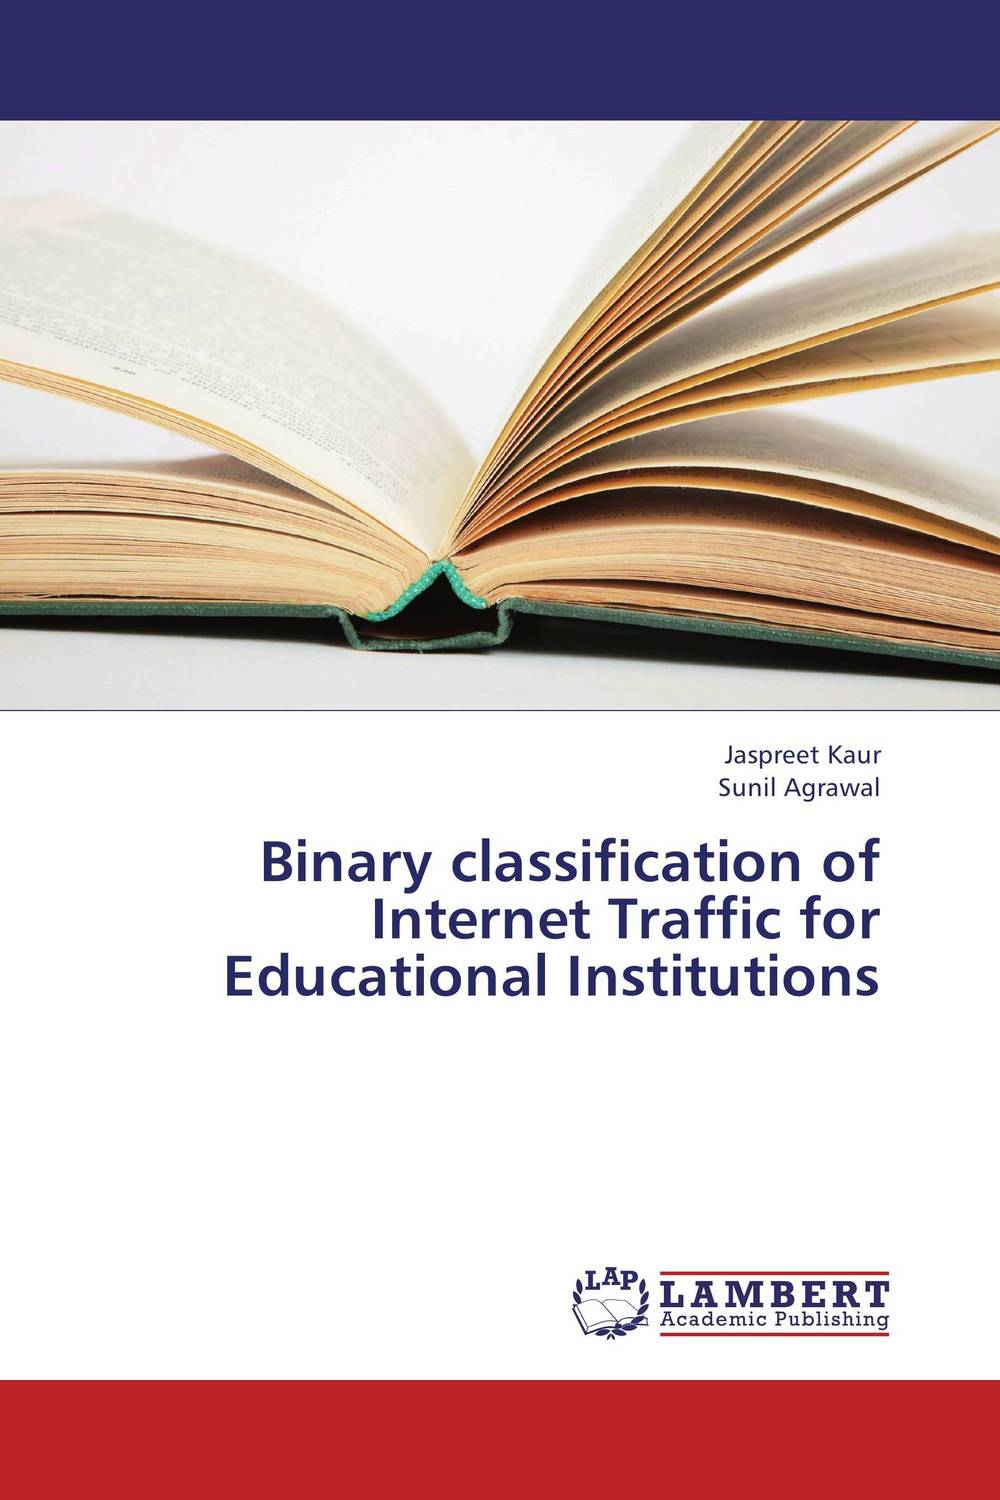 Binary classification of Internet Traffic for Educational Institutions